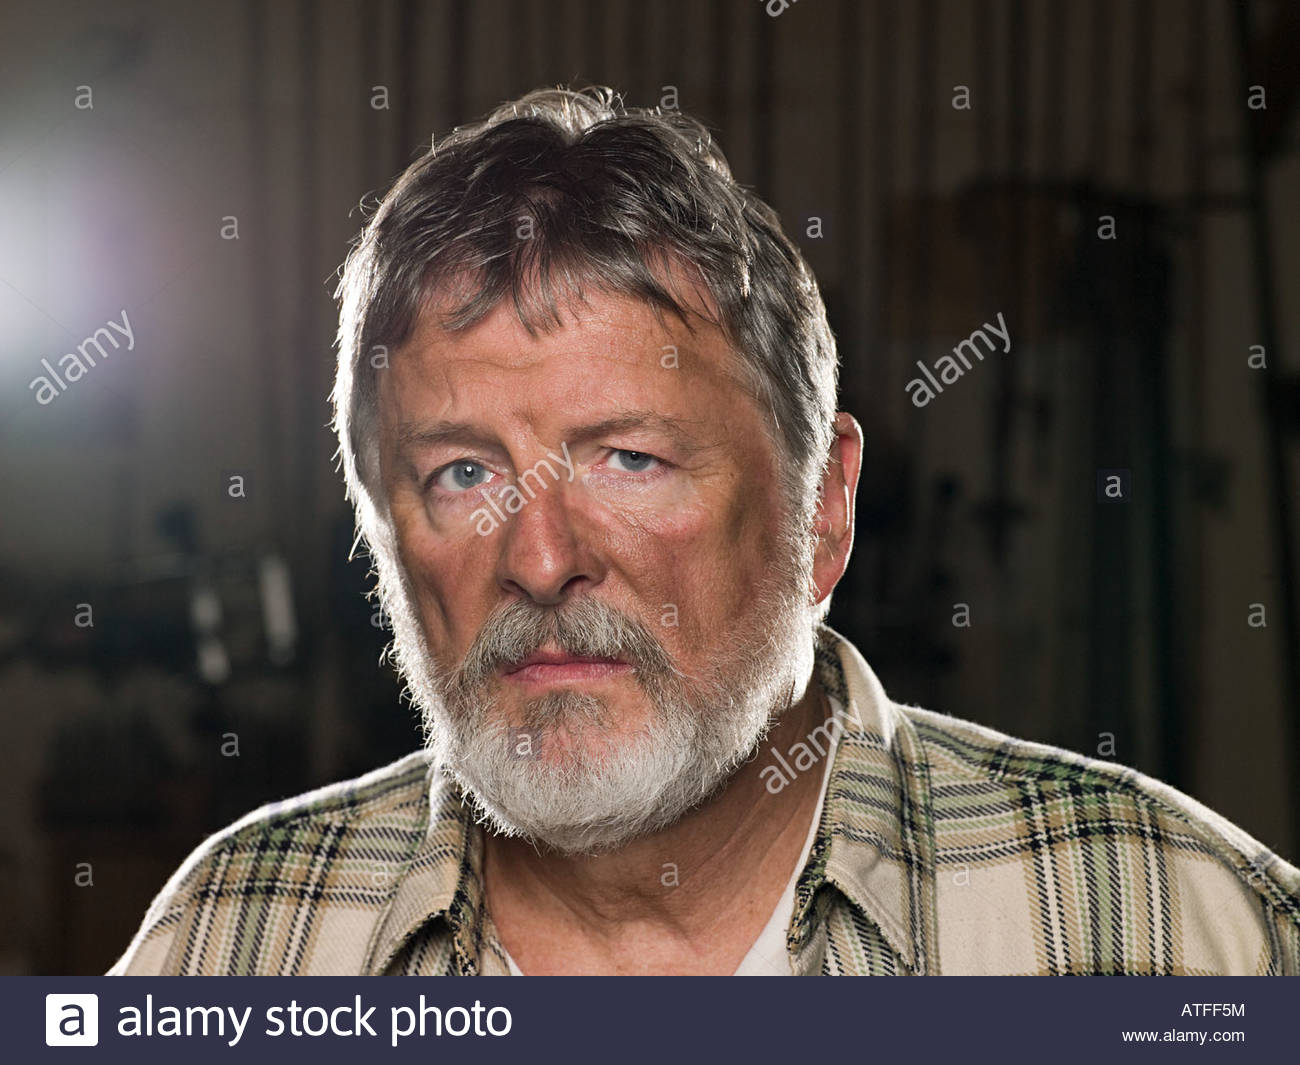 Male blue collar worker - Stock Image